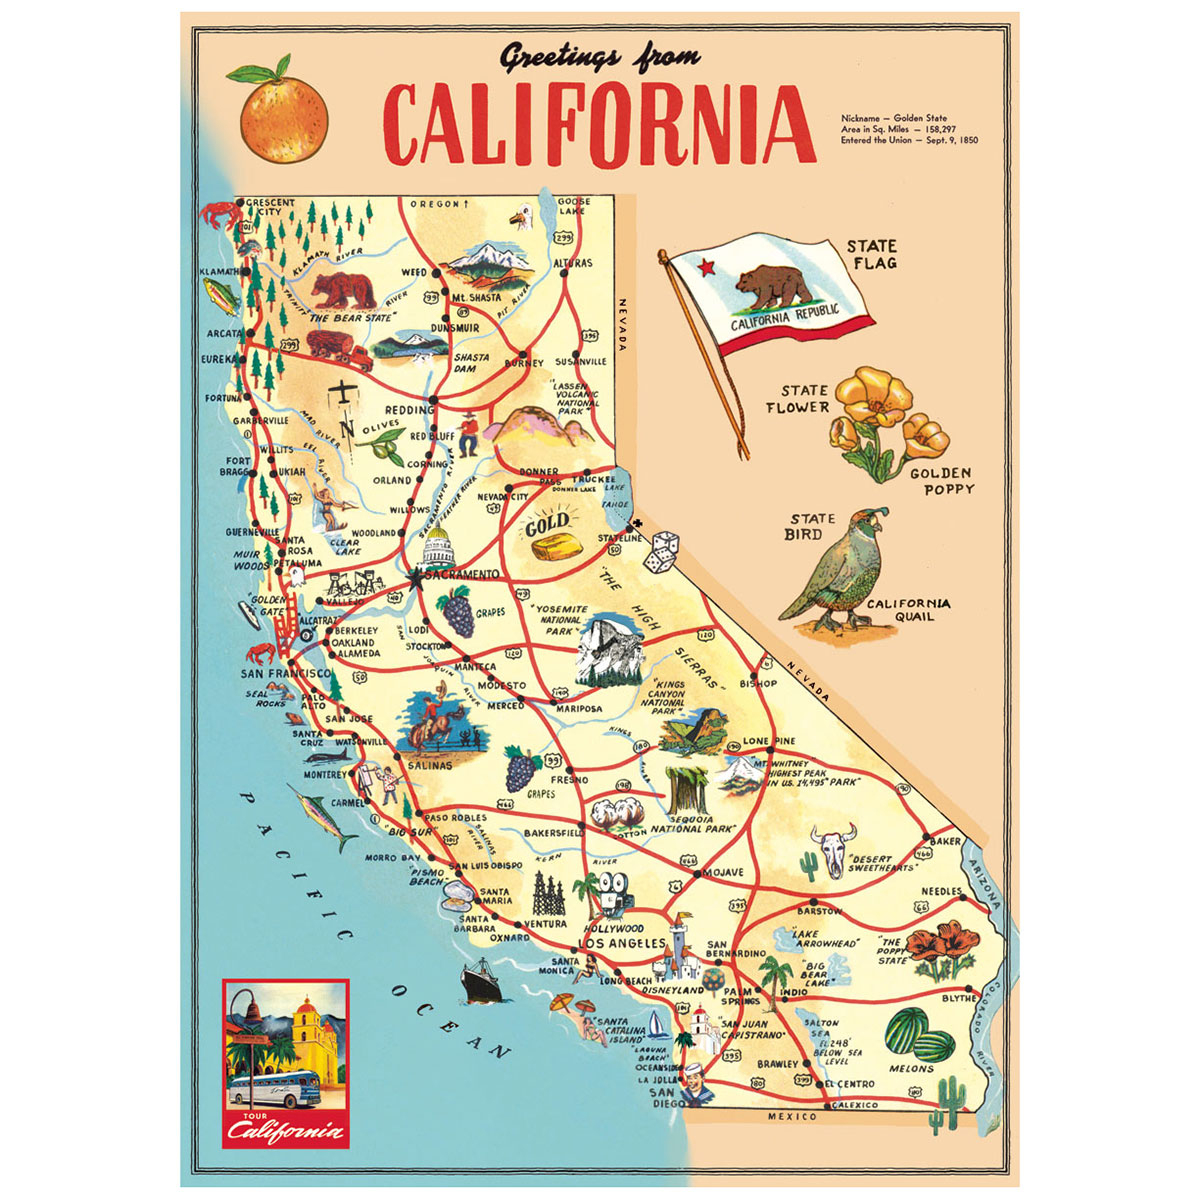 California Sightseeing Map Vintage Style Poster At Retro Planet - California Tourist Attractions Map